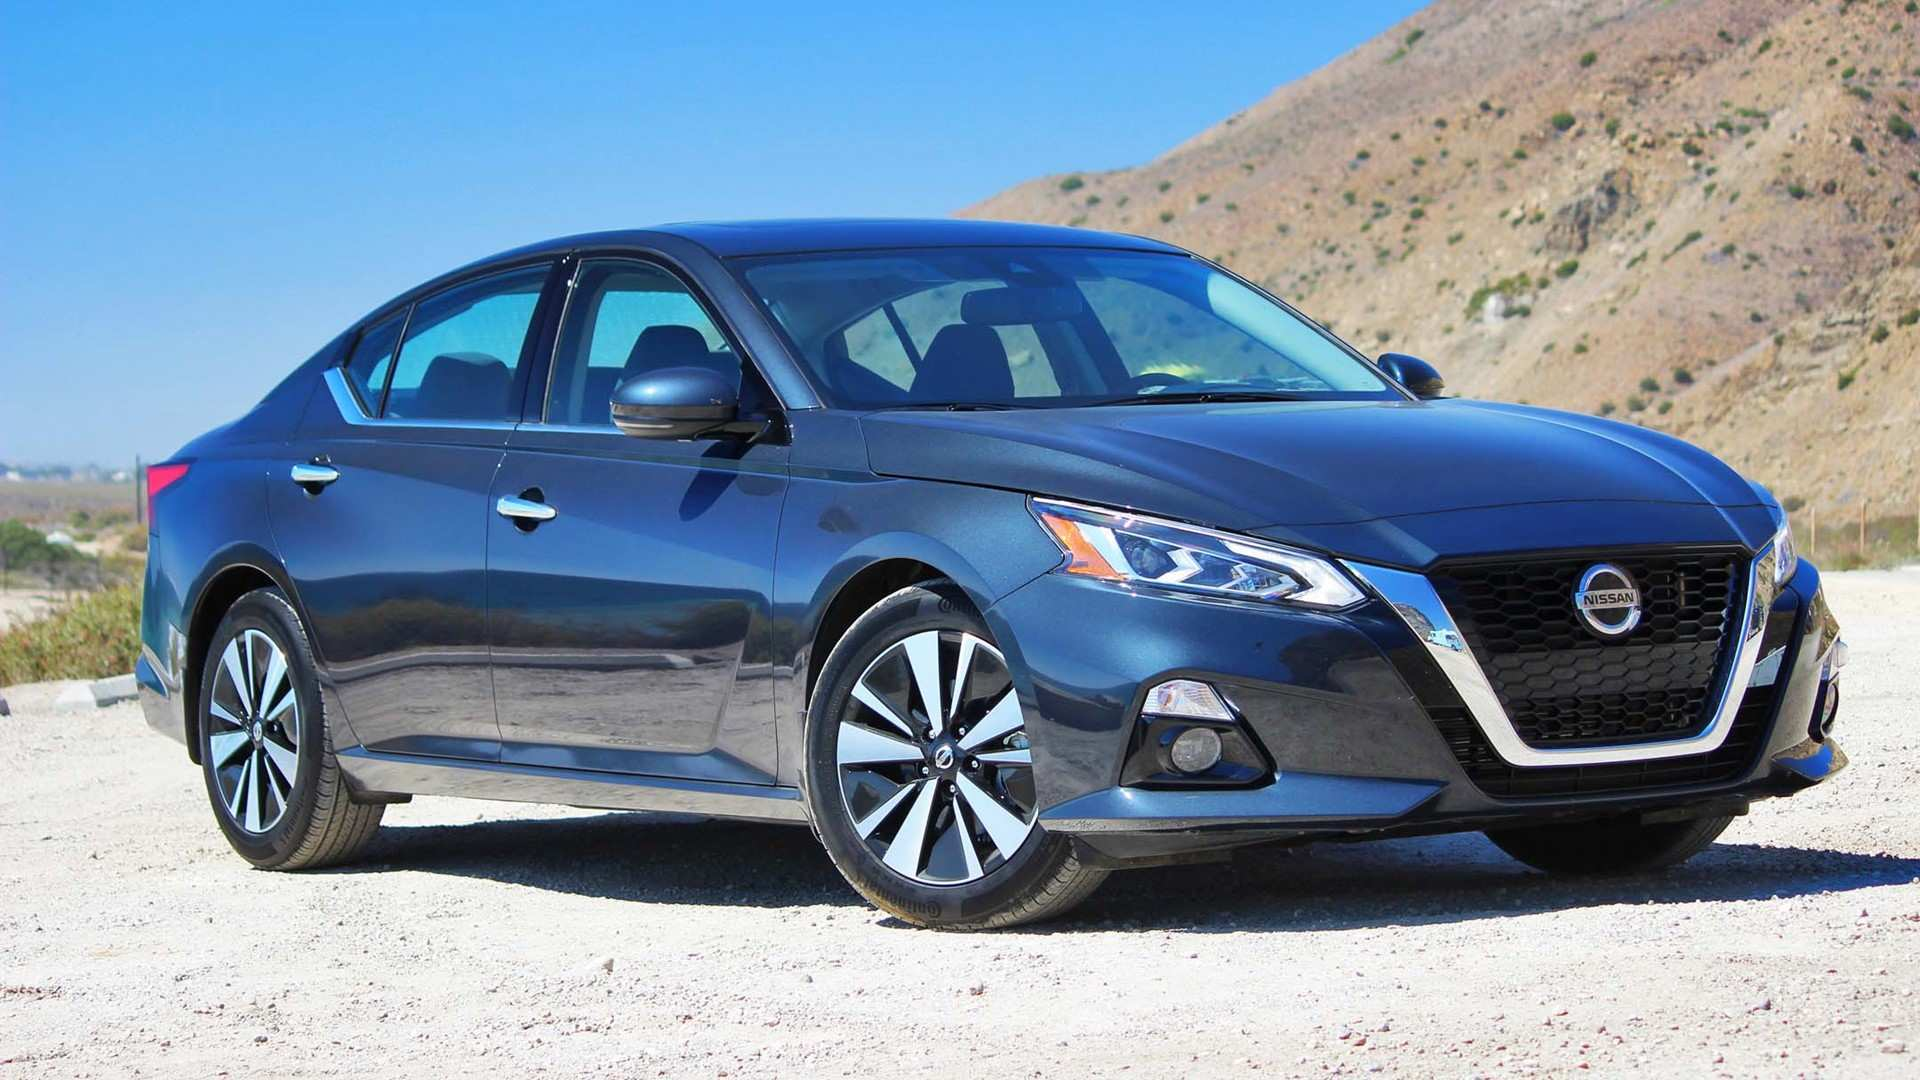 42 Best Review The 2019 Nissan Altima Horsepower First Drive Exterior by The 2019 Nissan Altima Horsepower First Drive